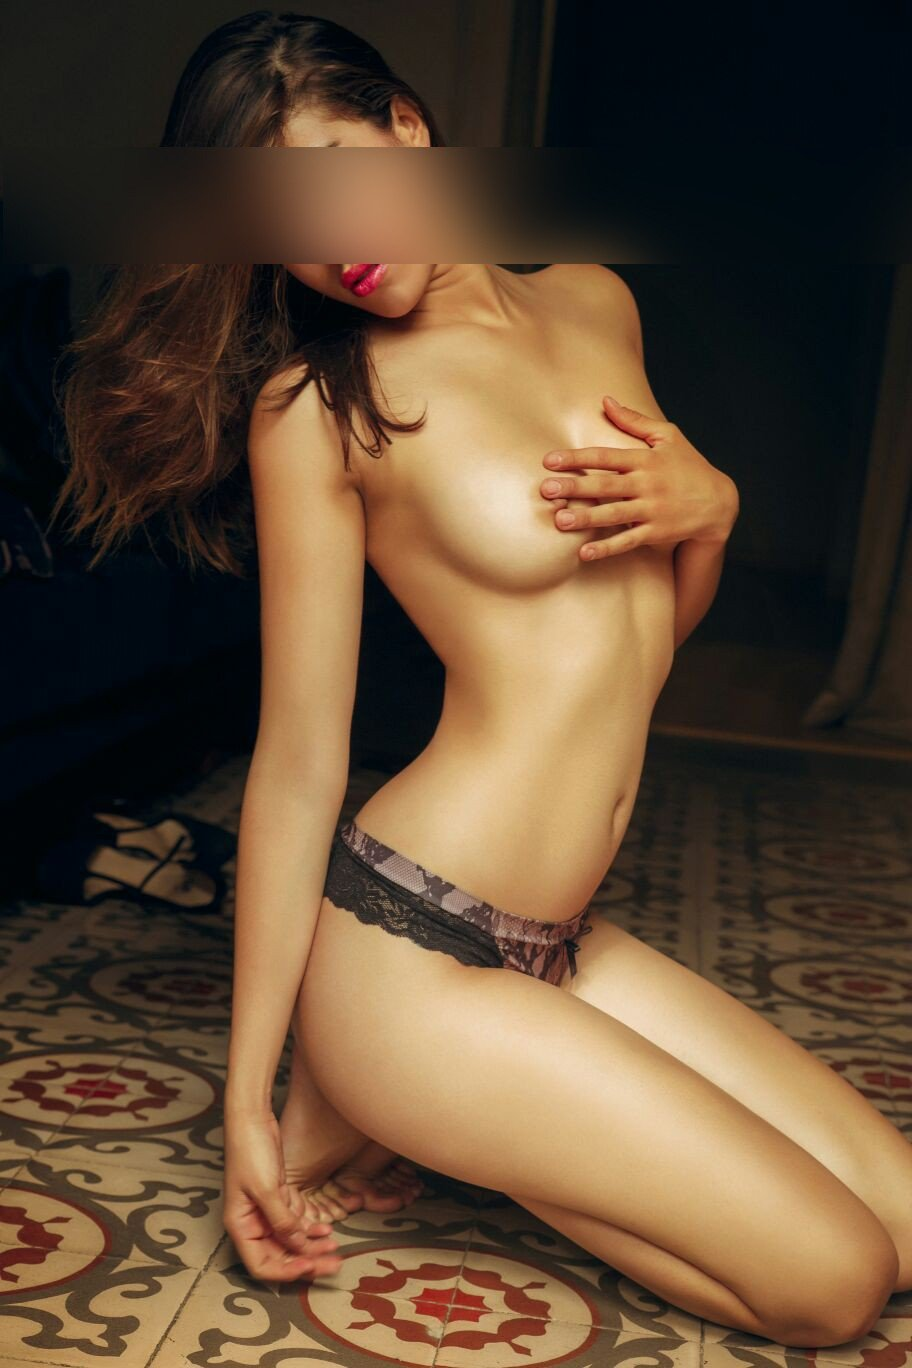 Marta (23), escort in Madrid, Madrid, Spain